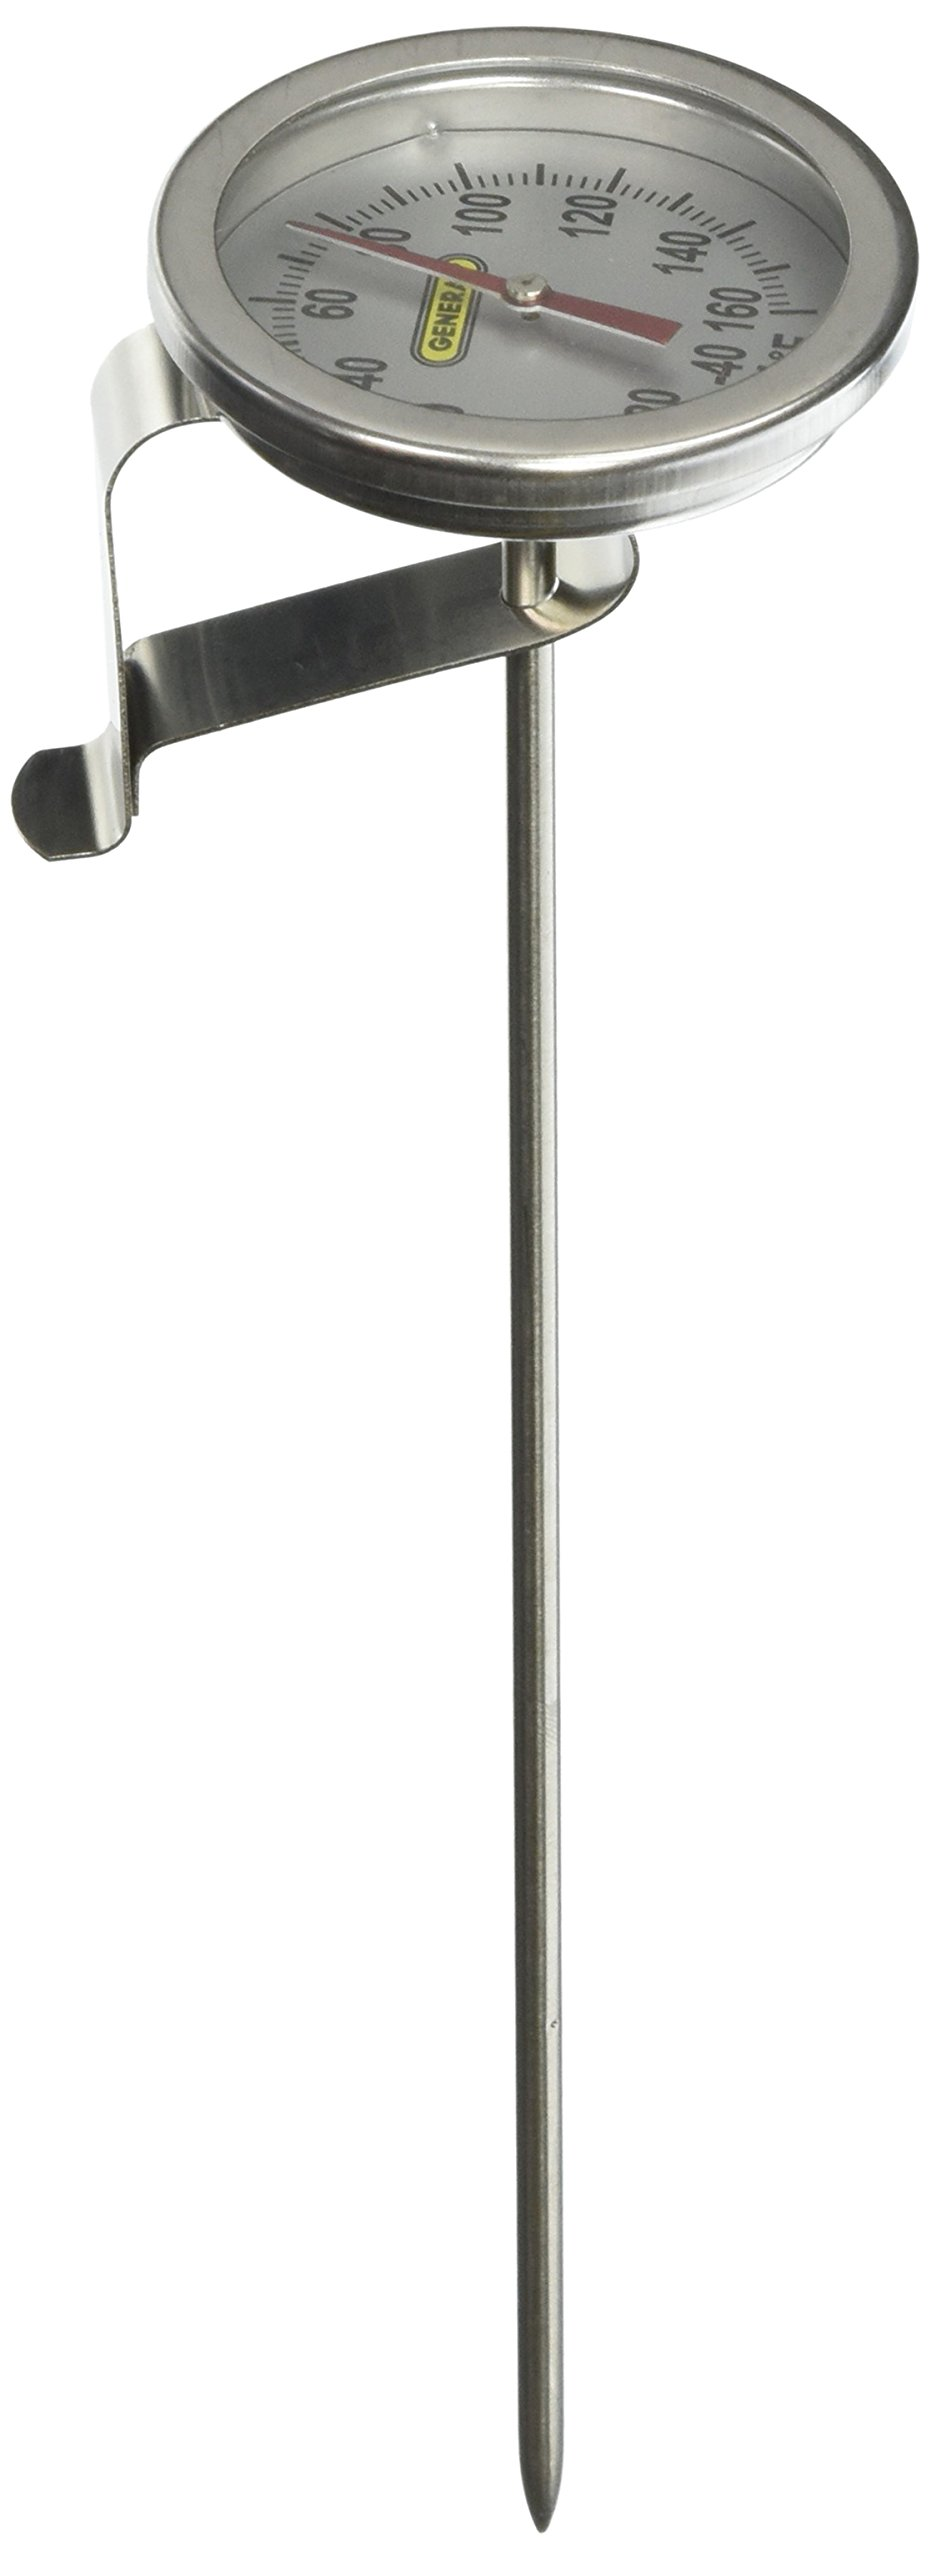 General Tools PT2008G-160 Analog Stem Thermometer with -40 to 160F Range, 8''